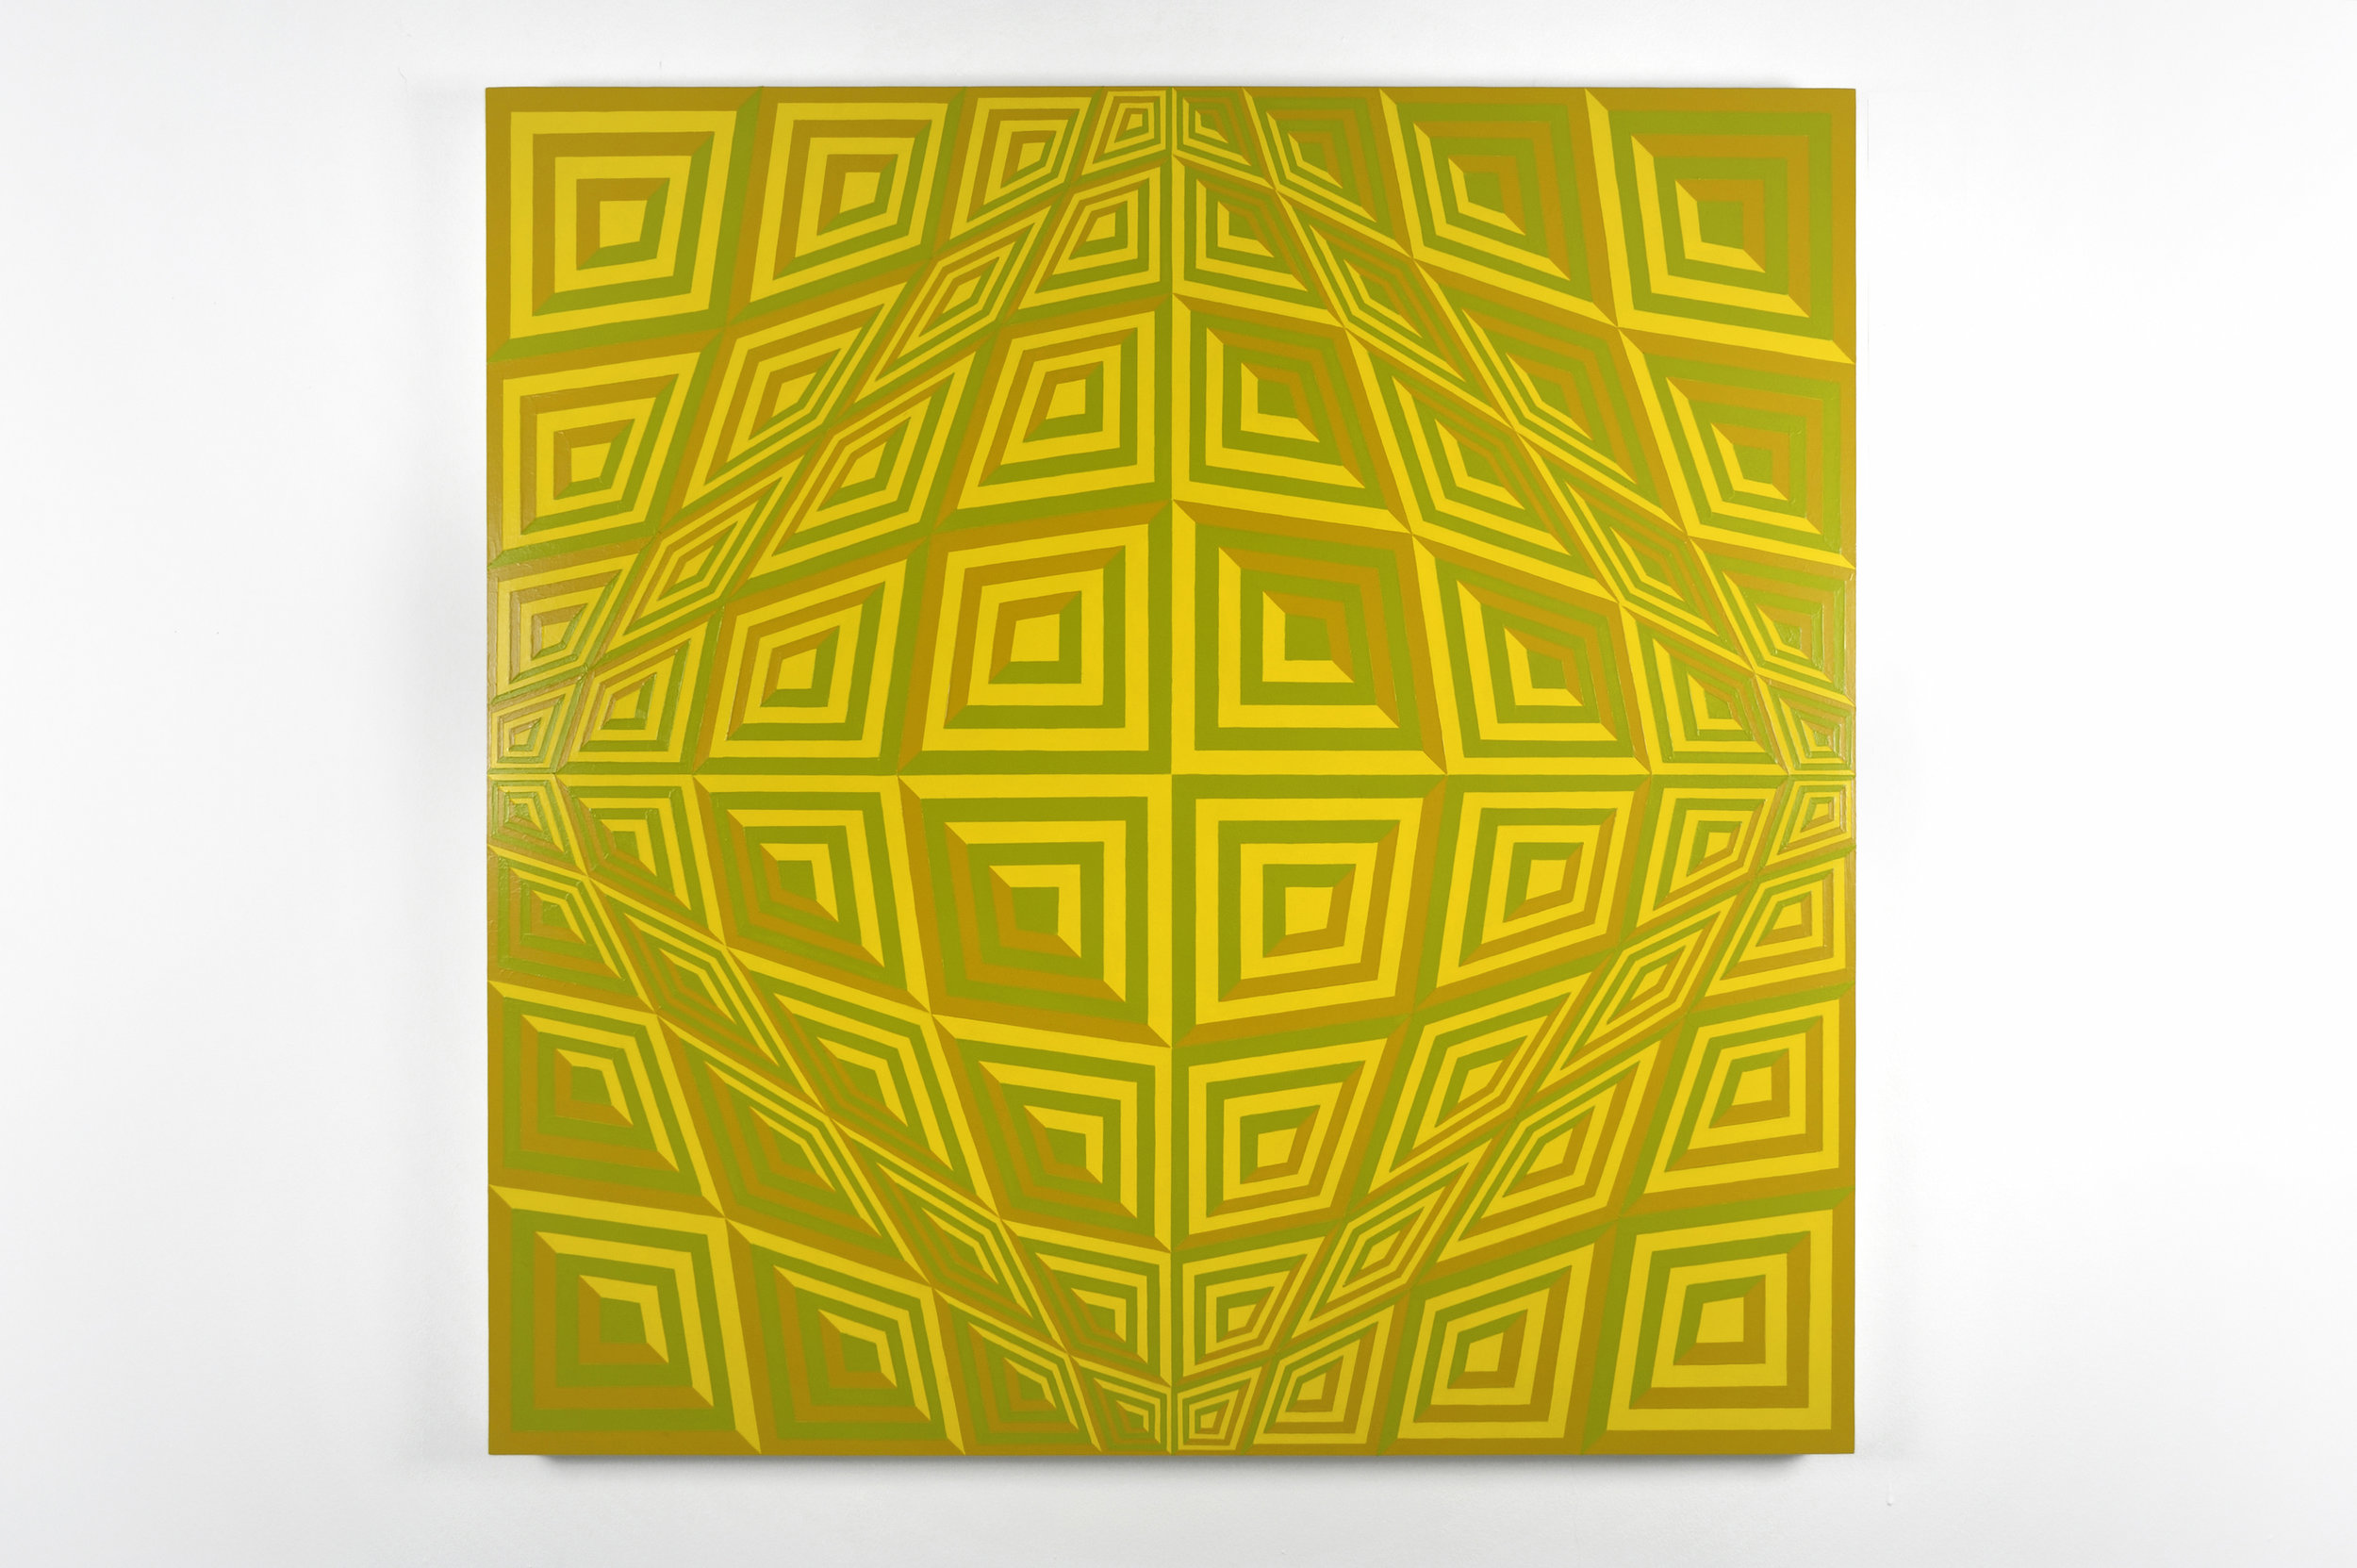 Untitled (yellow 116; ochre 124; green 397), 2009 acrylic latex paint on canvas 122 x 122 cm - 48 x 48 inches